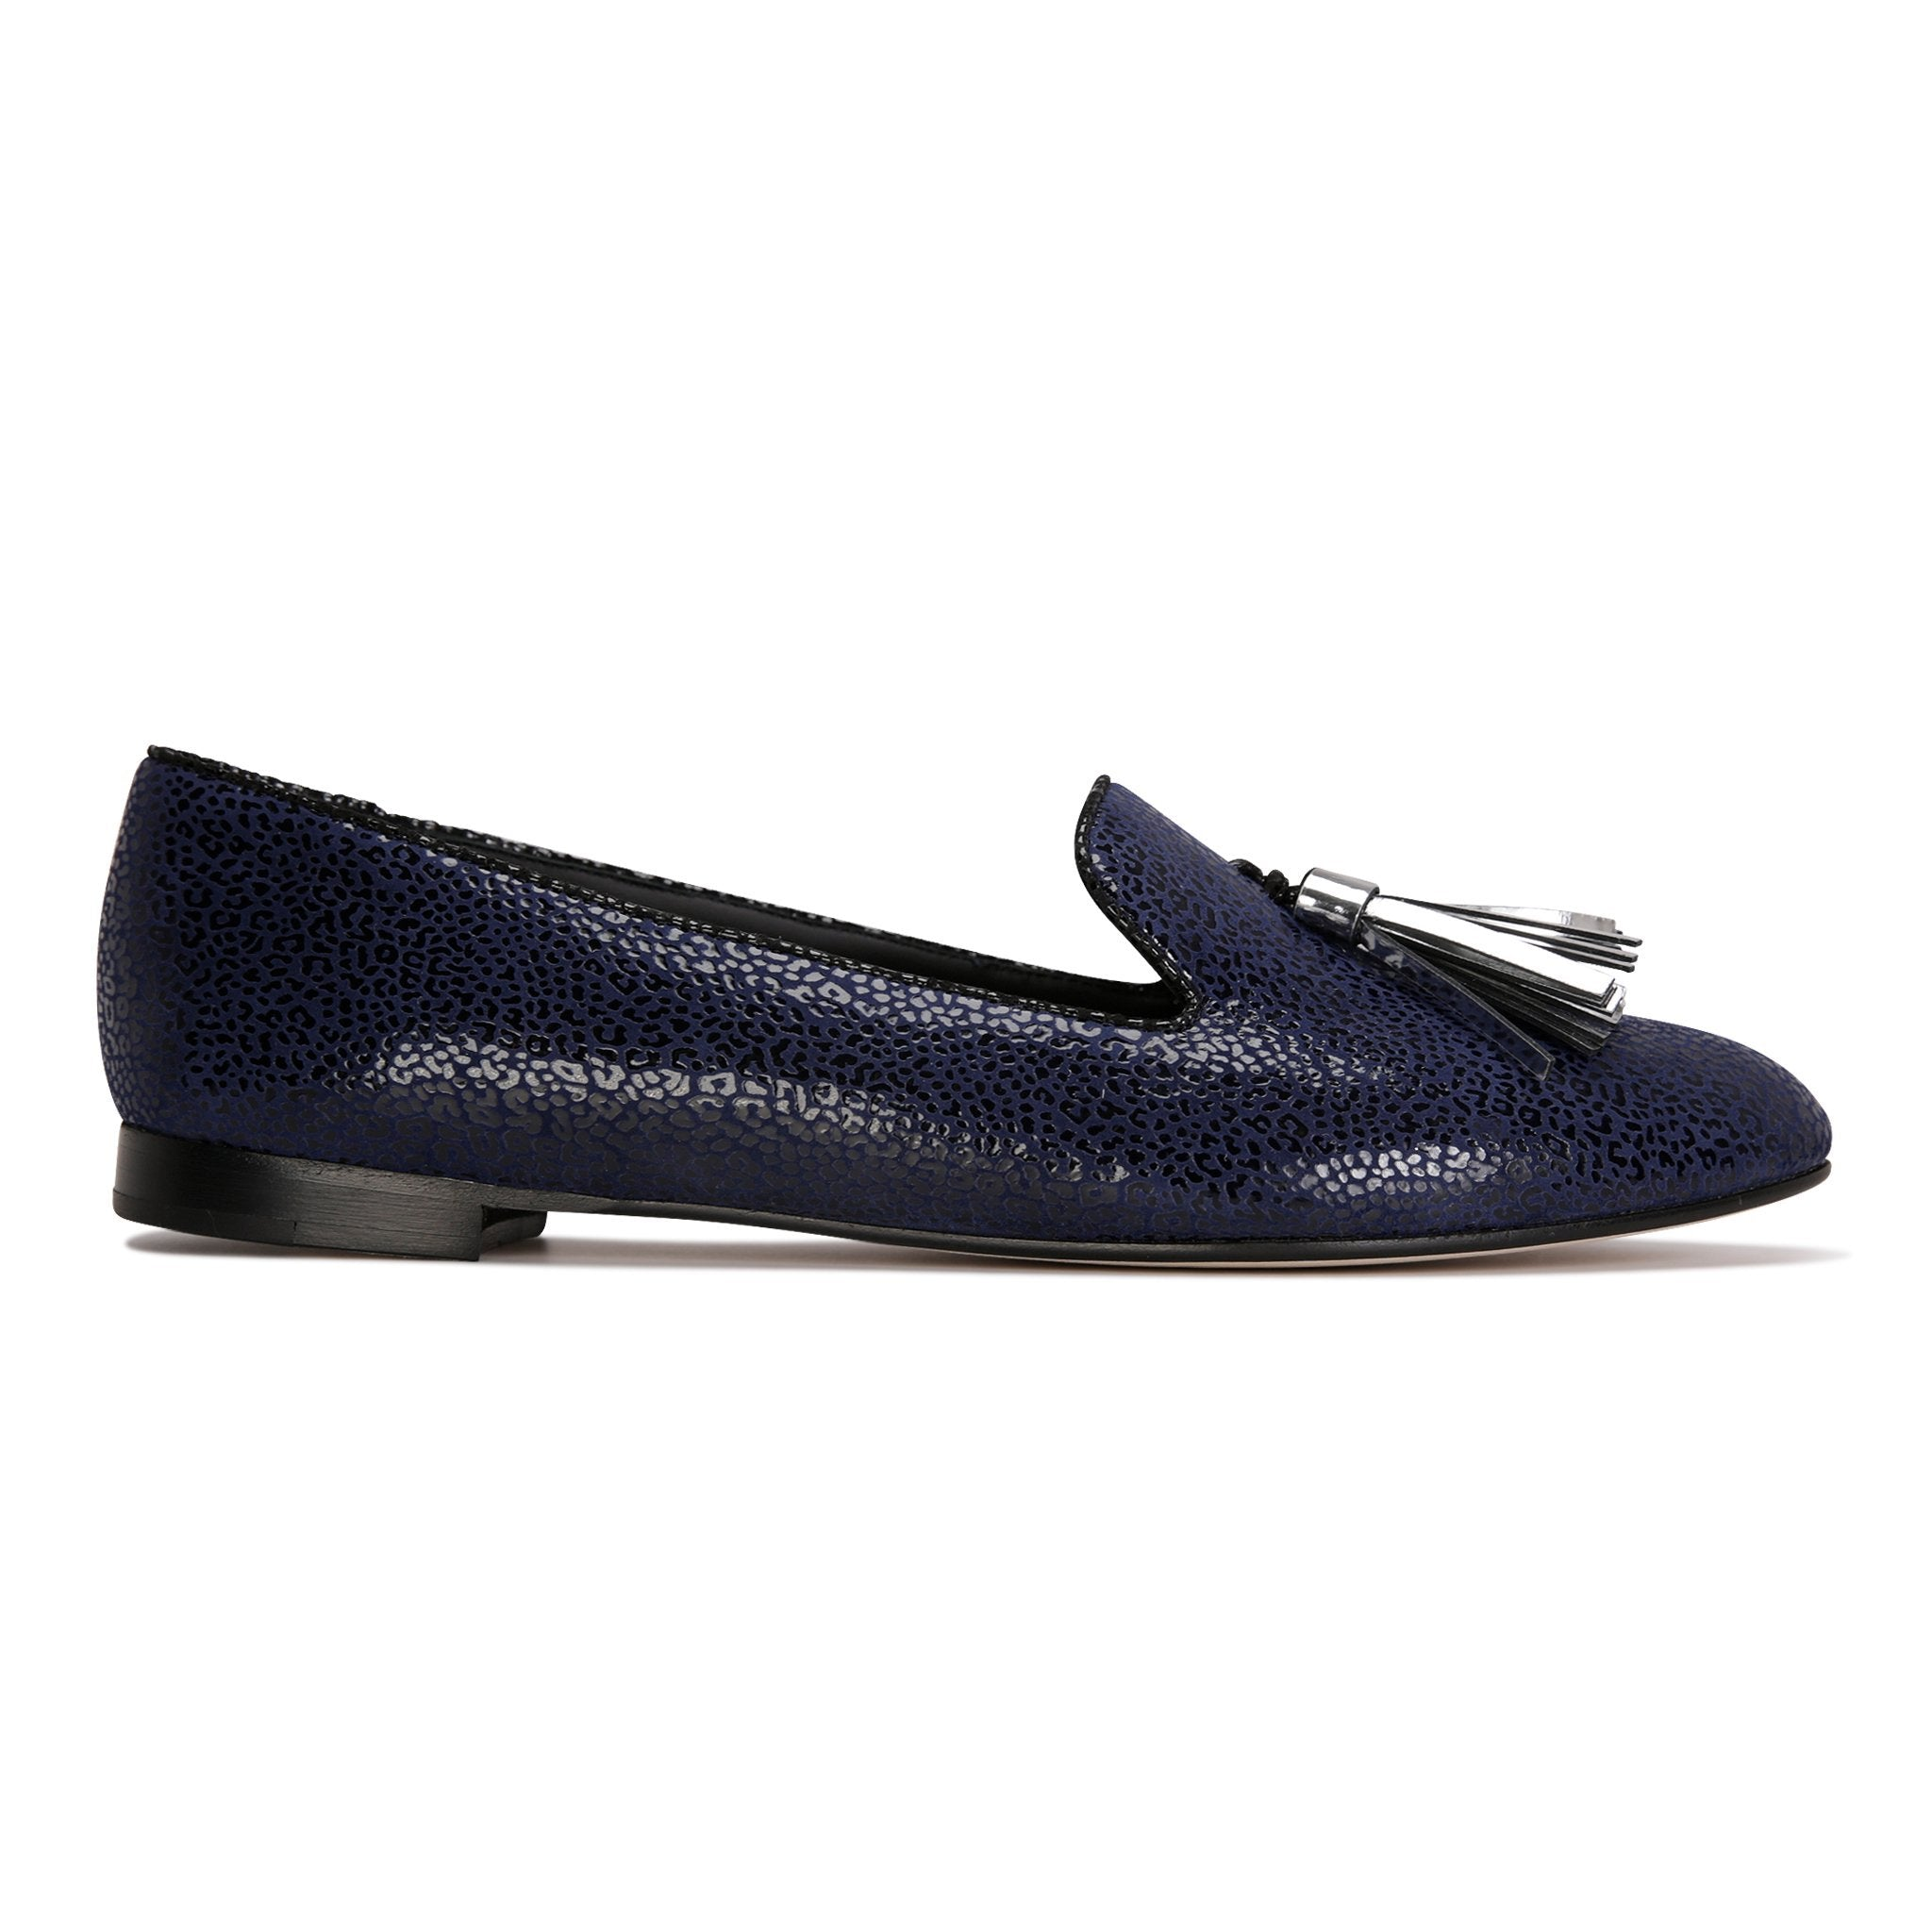 PARMA - Savannah Midnight + Metallic Argento, VIAJIYU - Women's Hand Made Sustainable Luxury Shoes. Made in Italy. Made to Order.